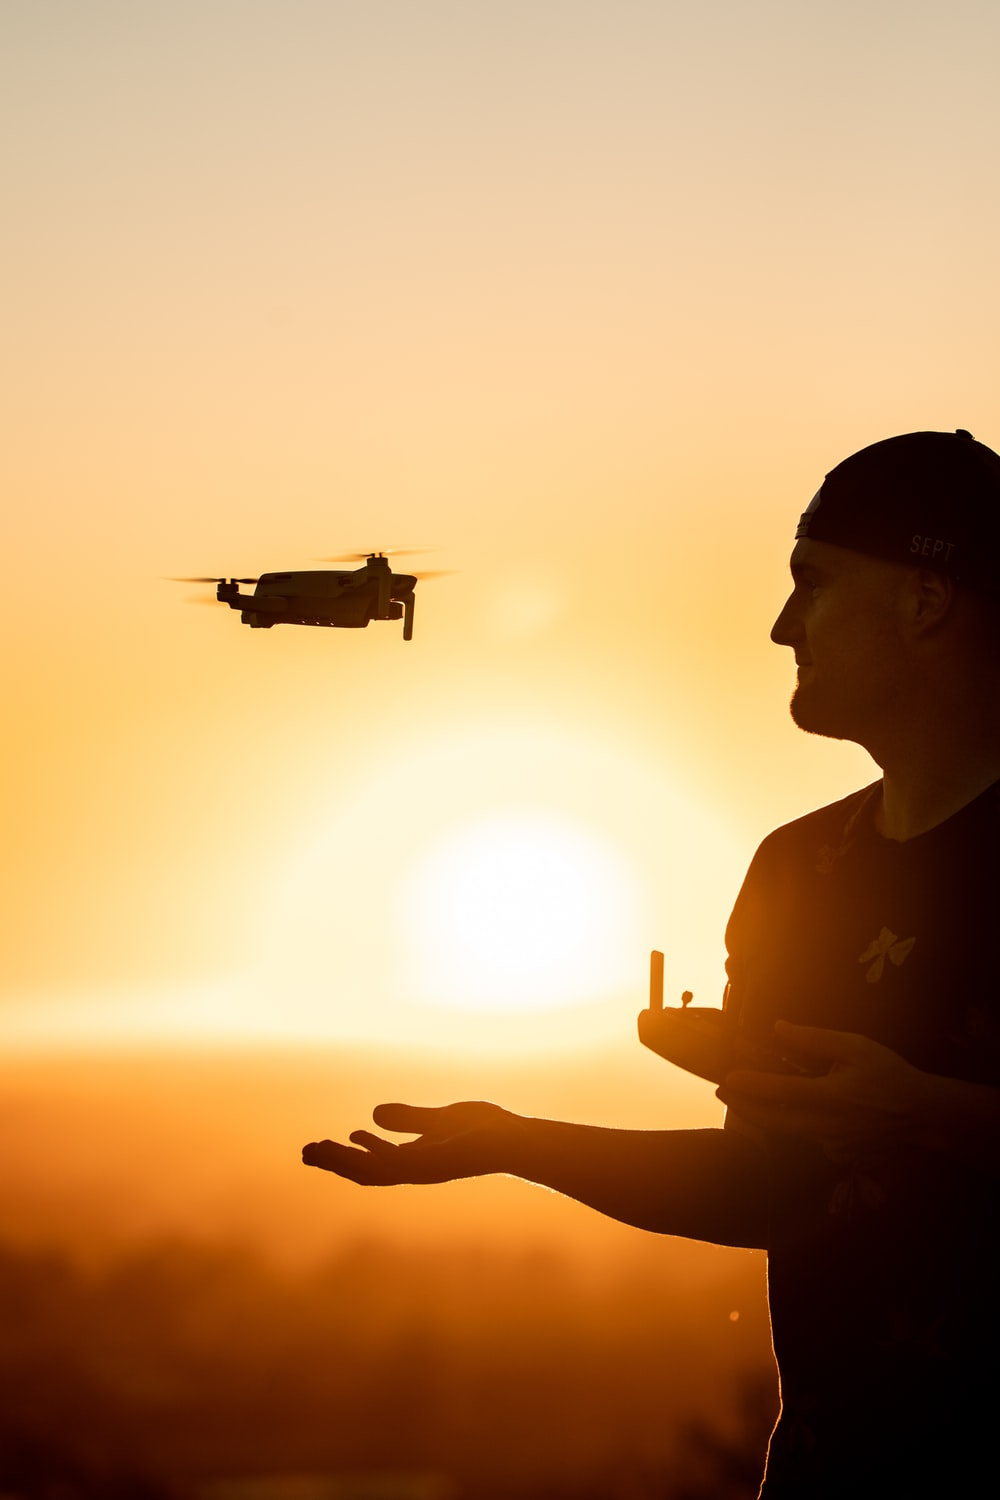 silhouette of man holding drone